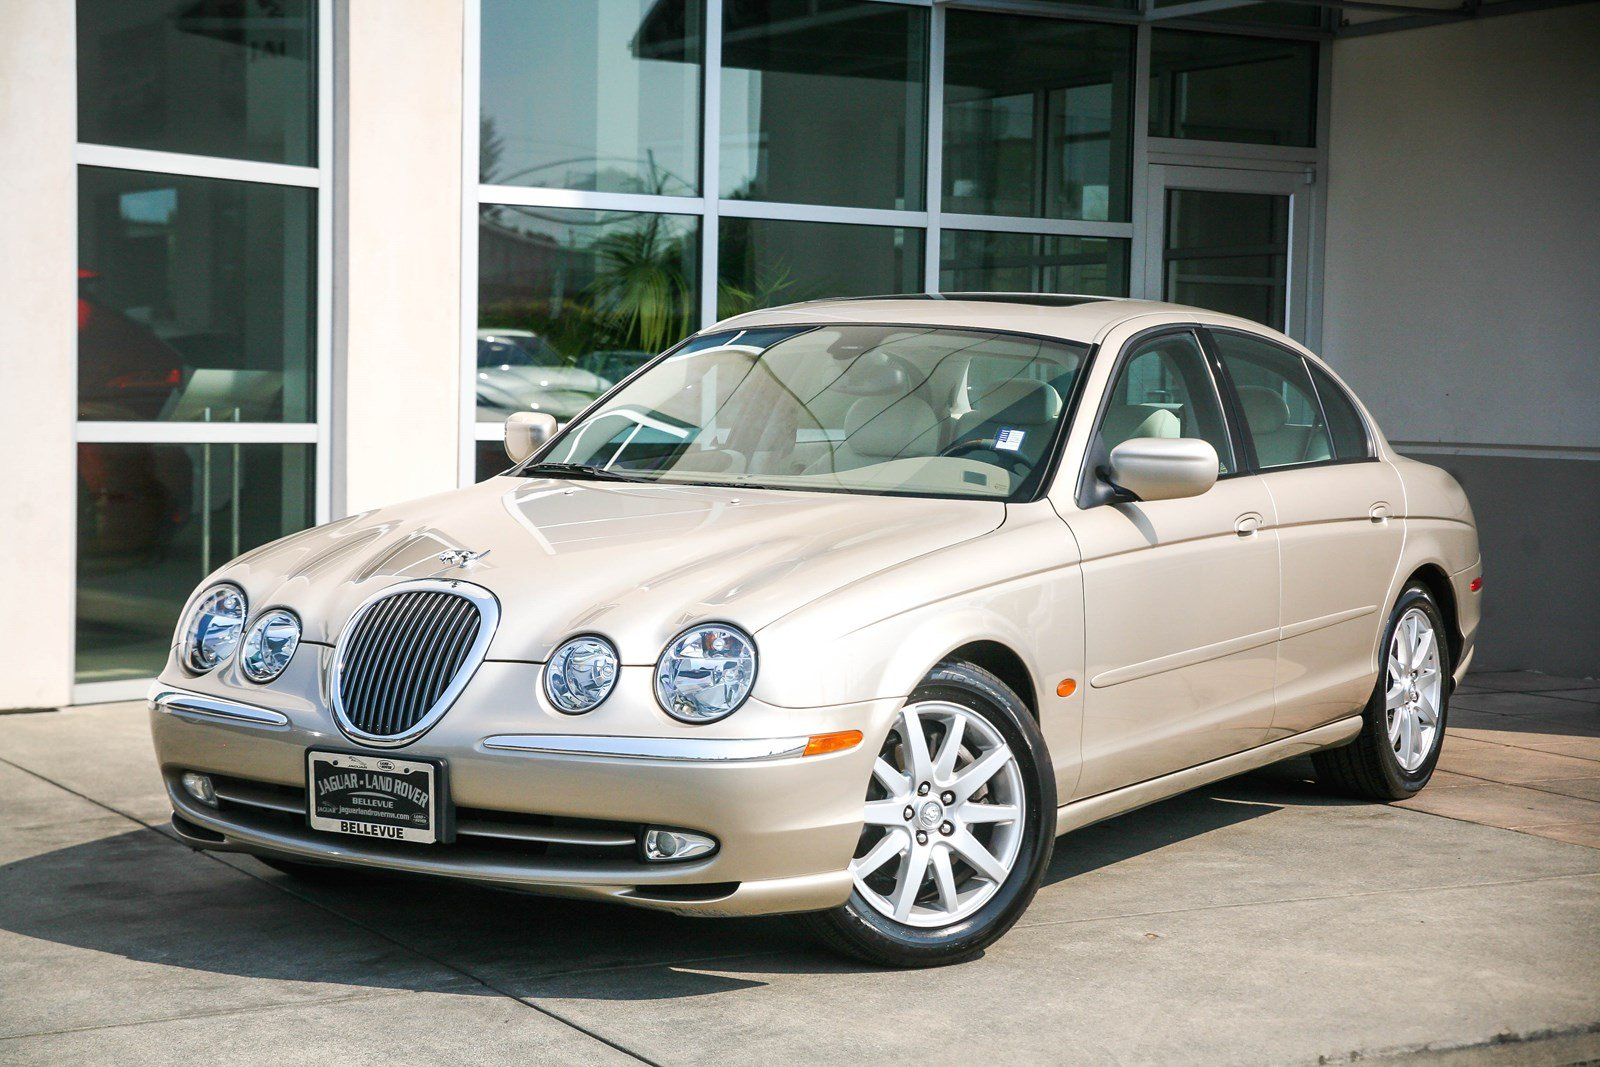 Pre-Owned 2000 Jaguar S-TYPE V8